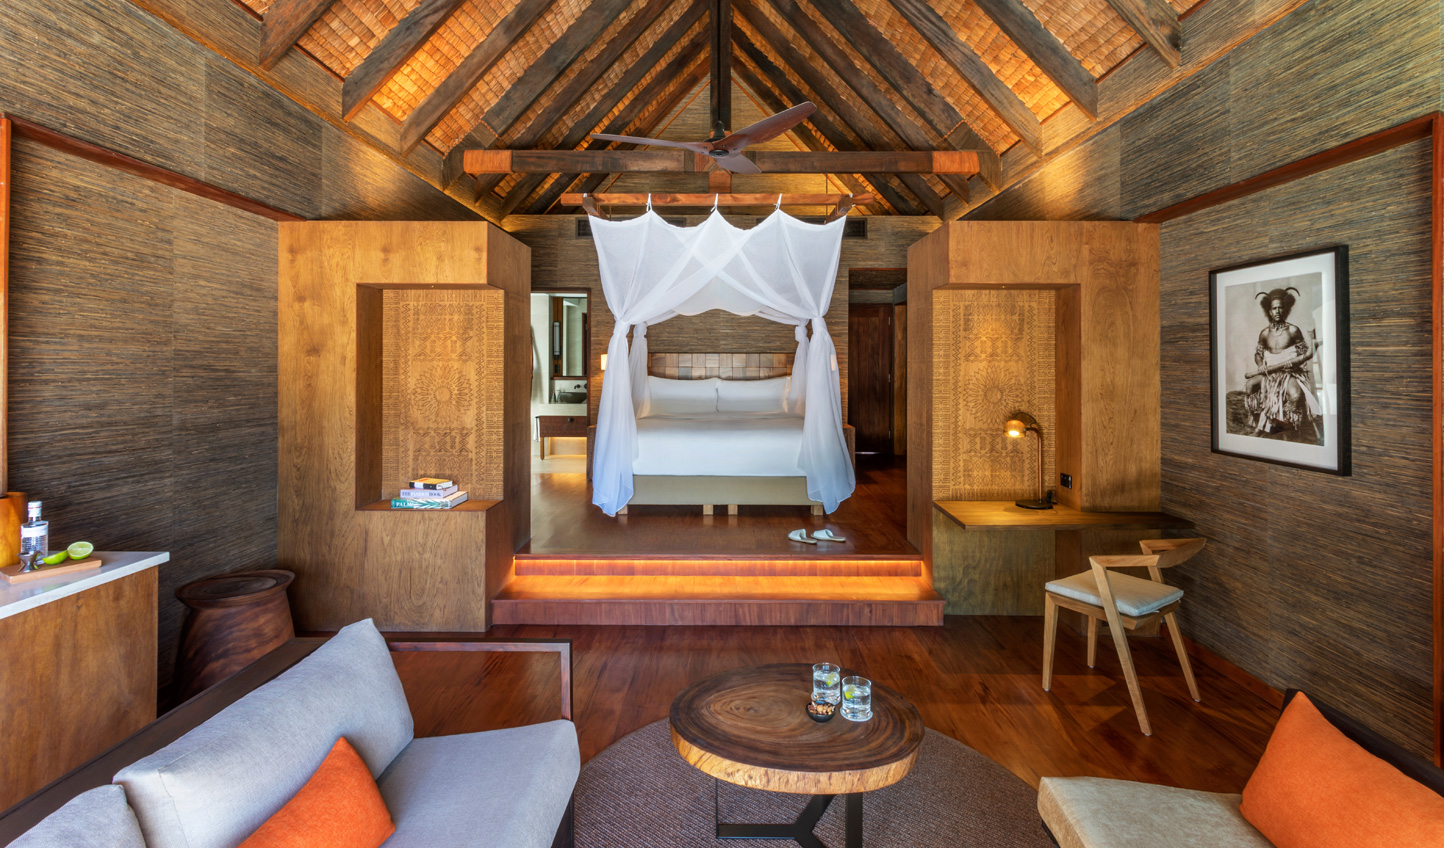 Rustic luxury brought to life through traditional Fijian design